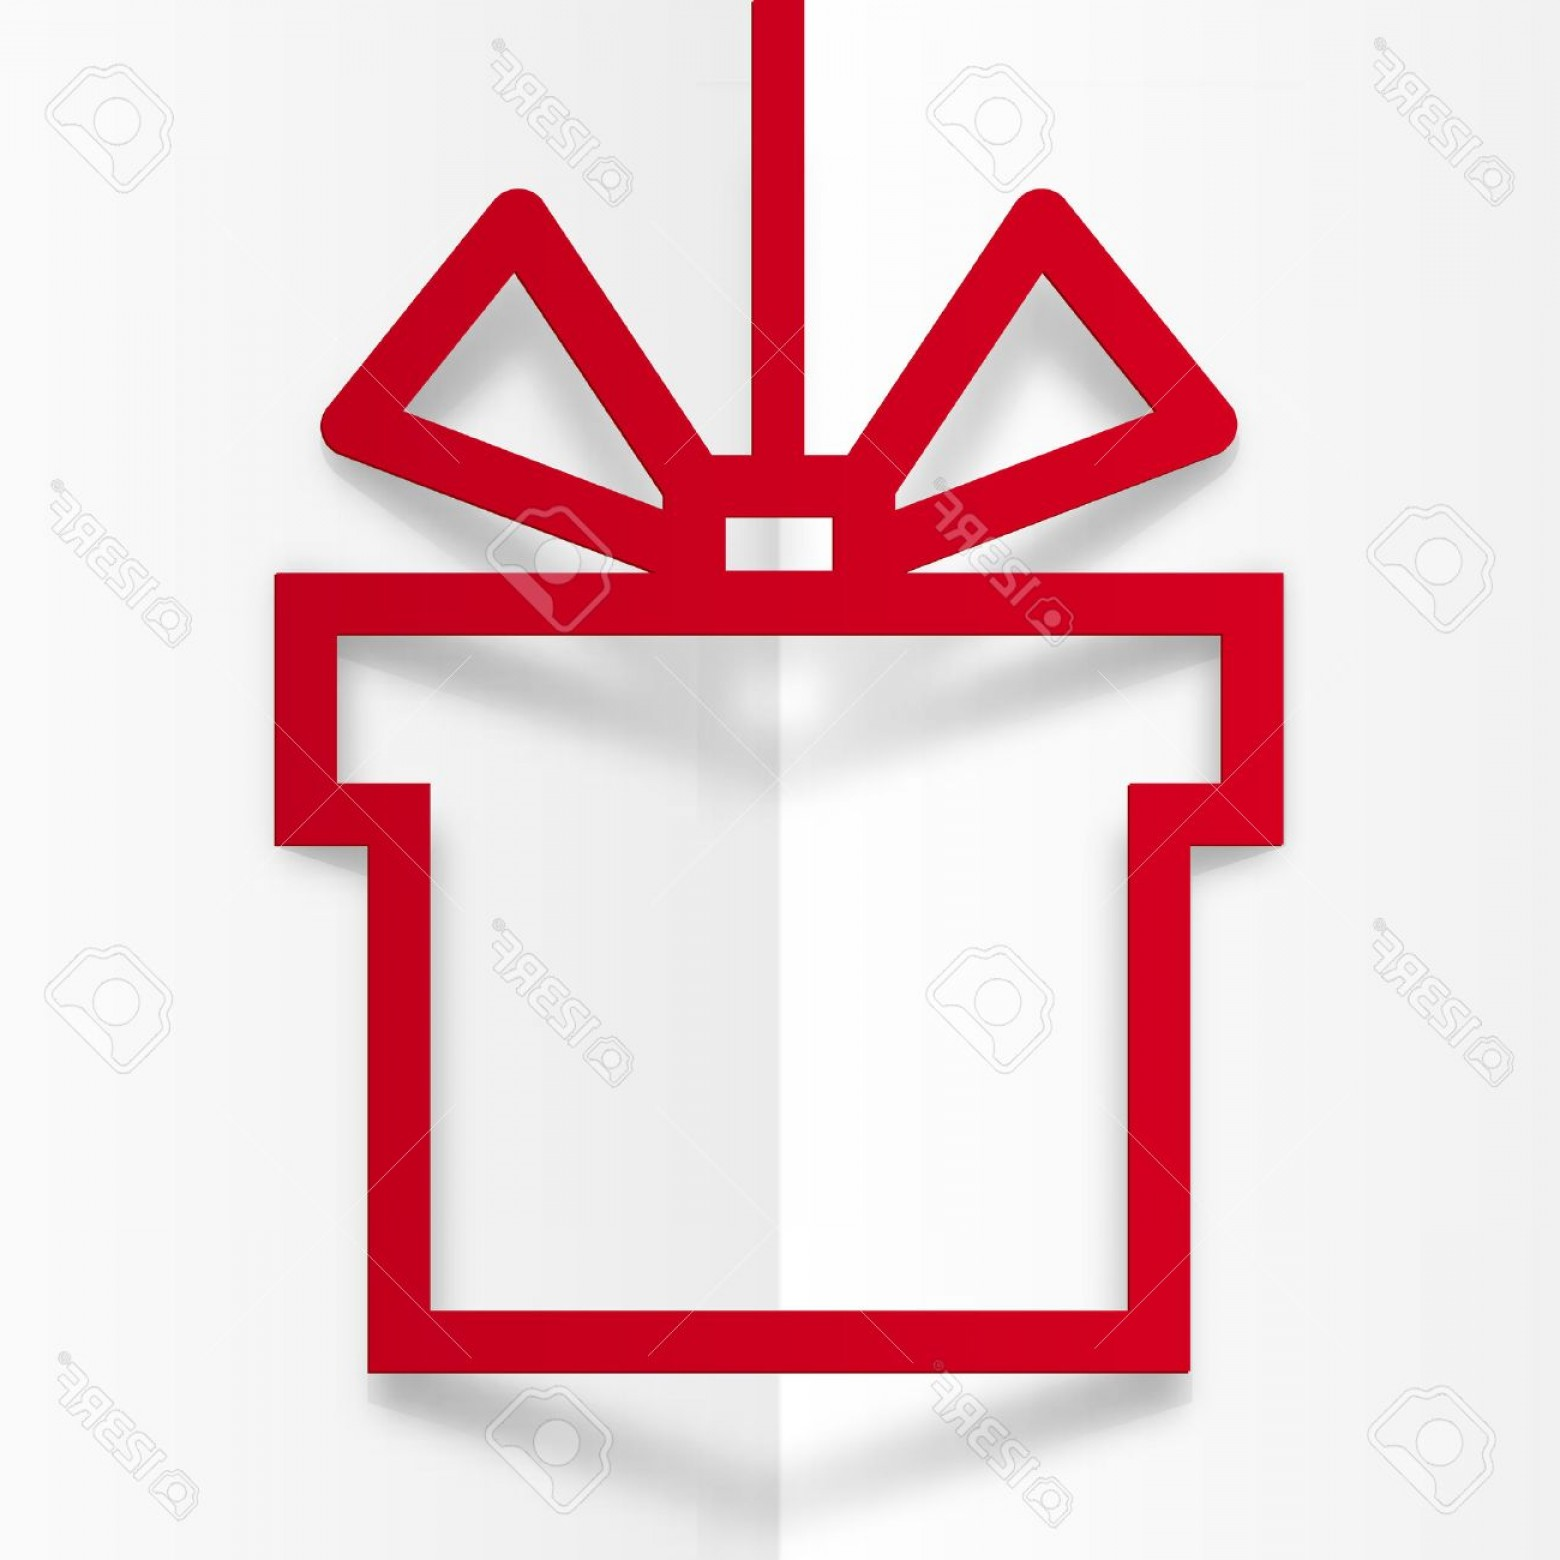 Vector Frame Gift: Photostock Vector Red Gift Box Silhouette Vector Frame With Stylized Bow